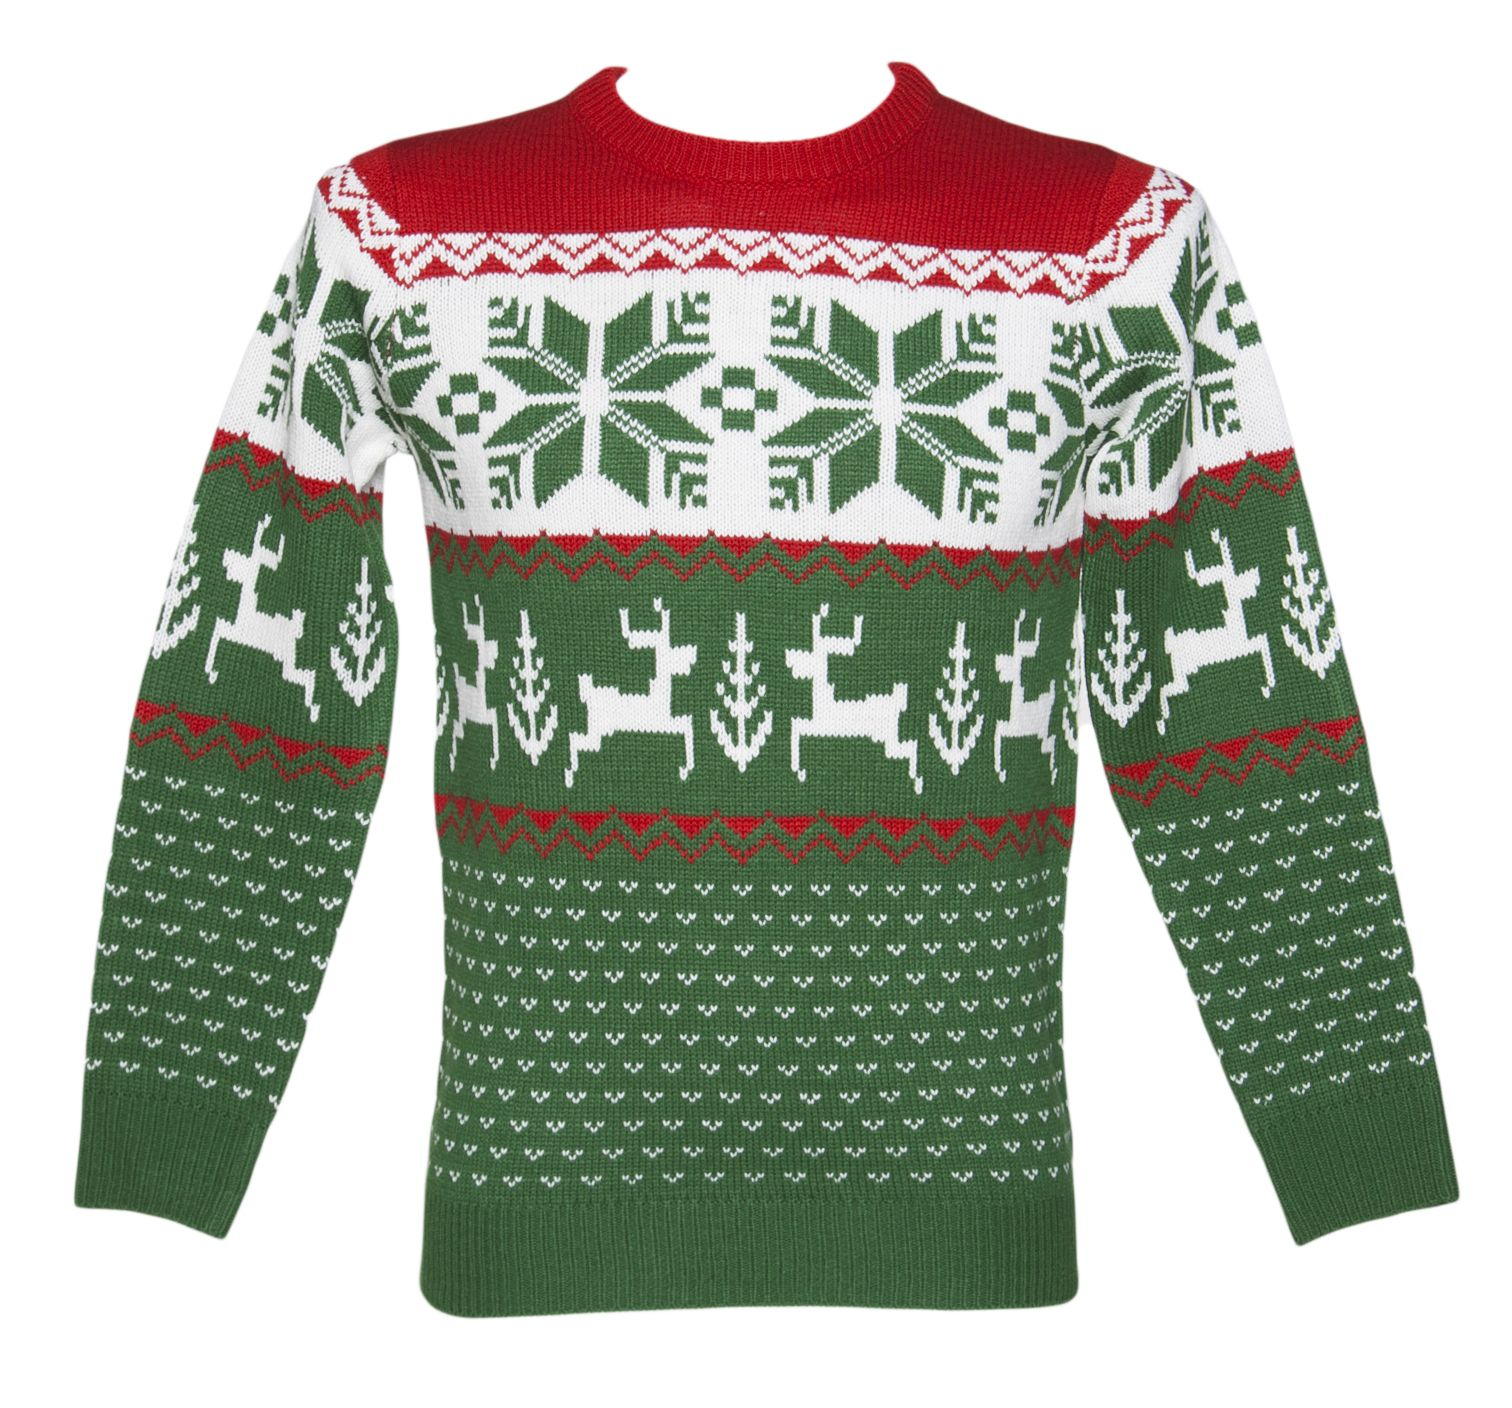 Unisex Green and Red Wonderland Knitted Christmas